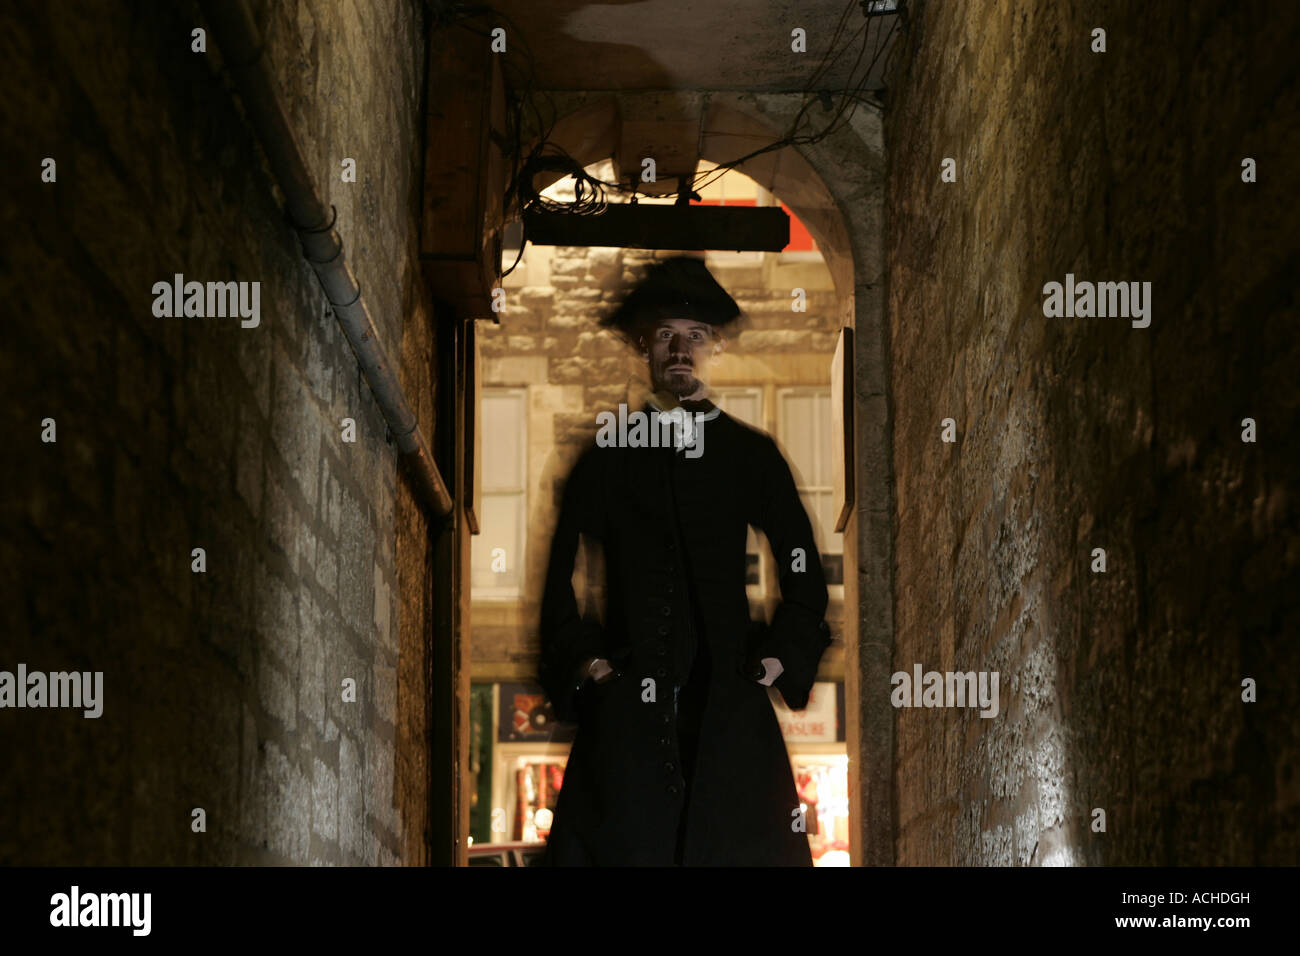 The shadowy figure of a man standing in a passageway. - Stock Image